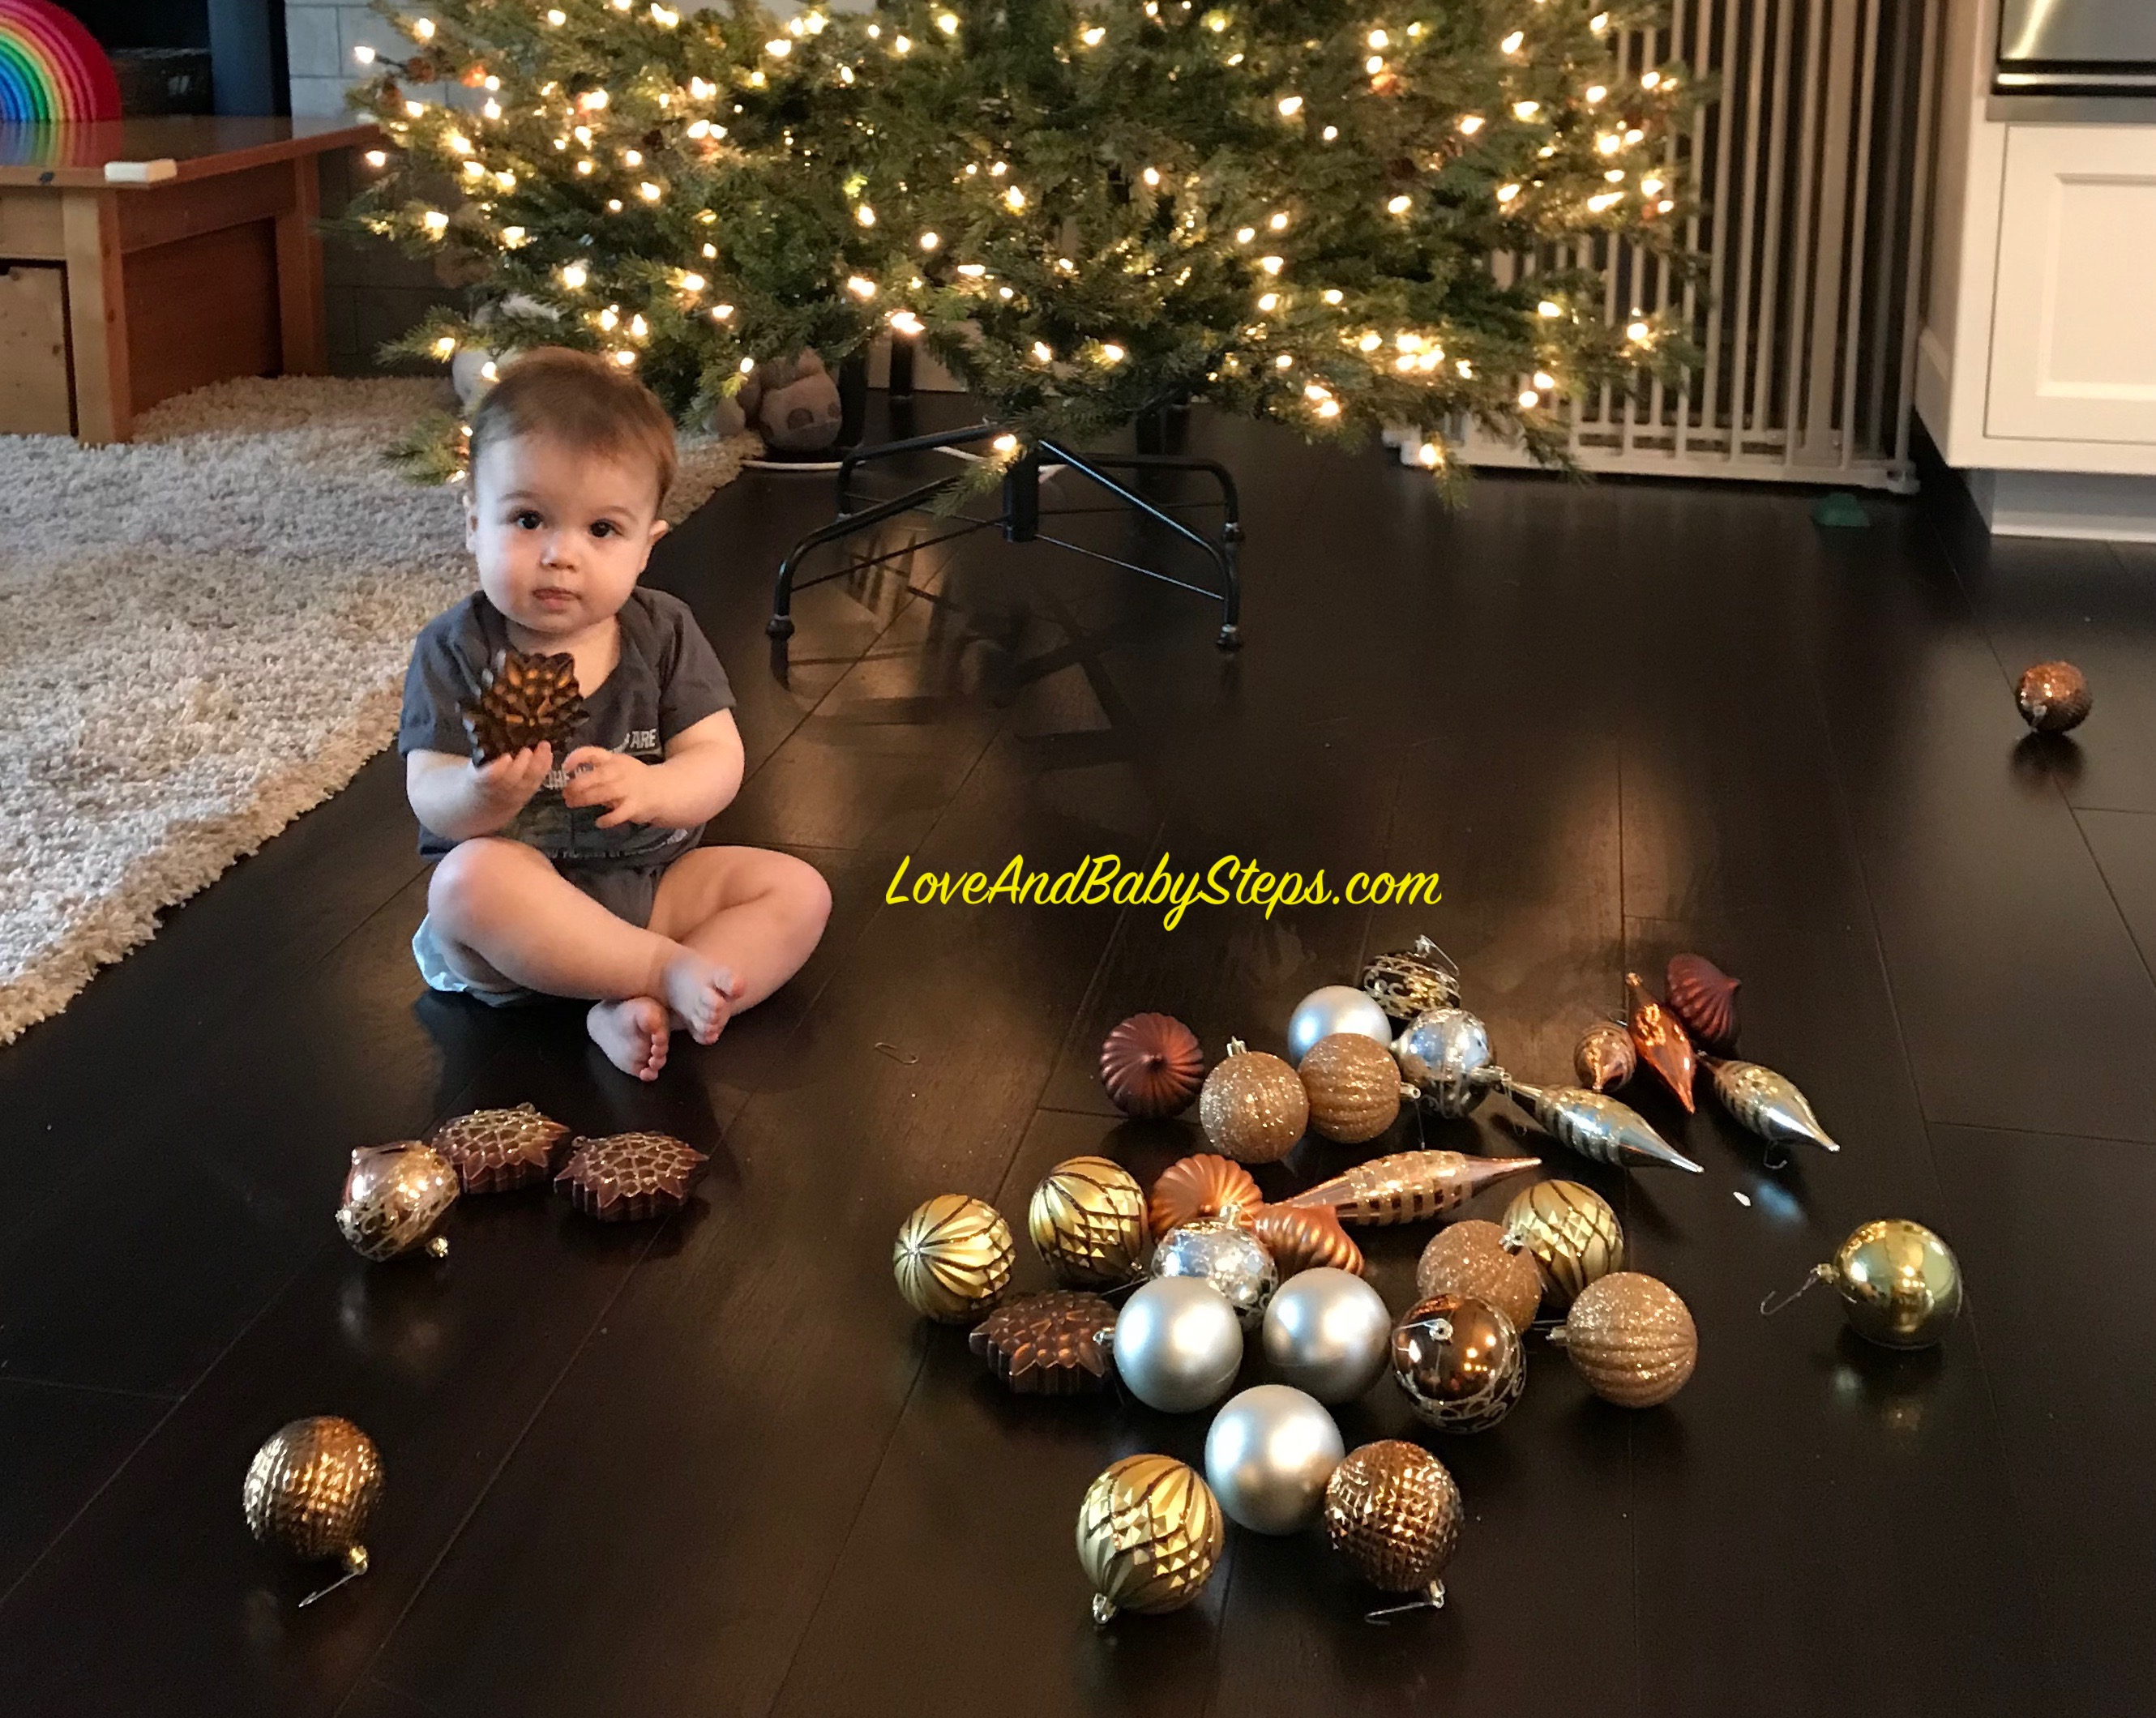 Toddler Proof Christmas Tree.Toddler Proof Christmas Tree Tips Love And Baby Steps